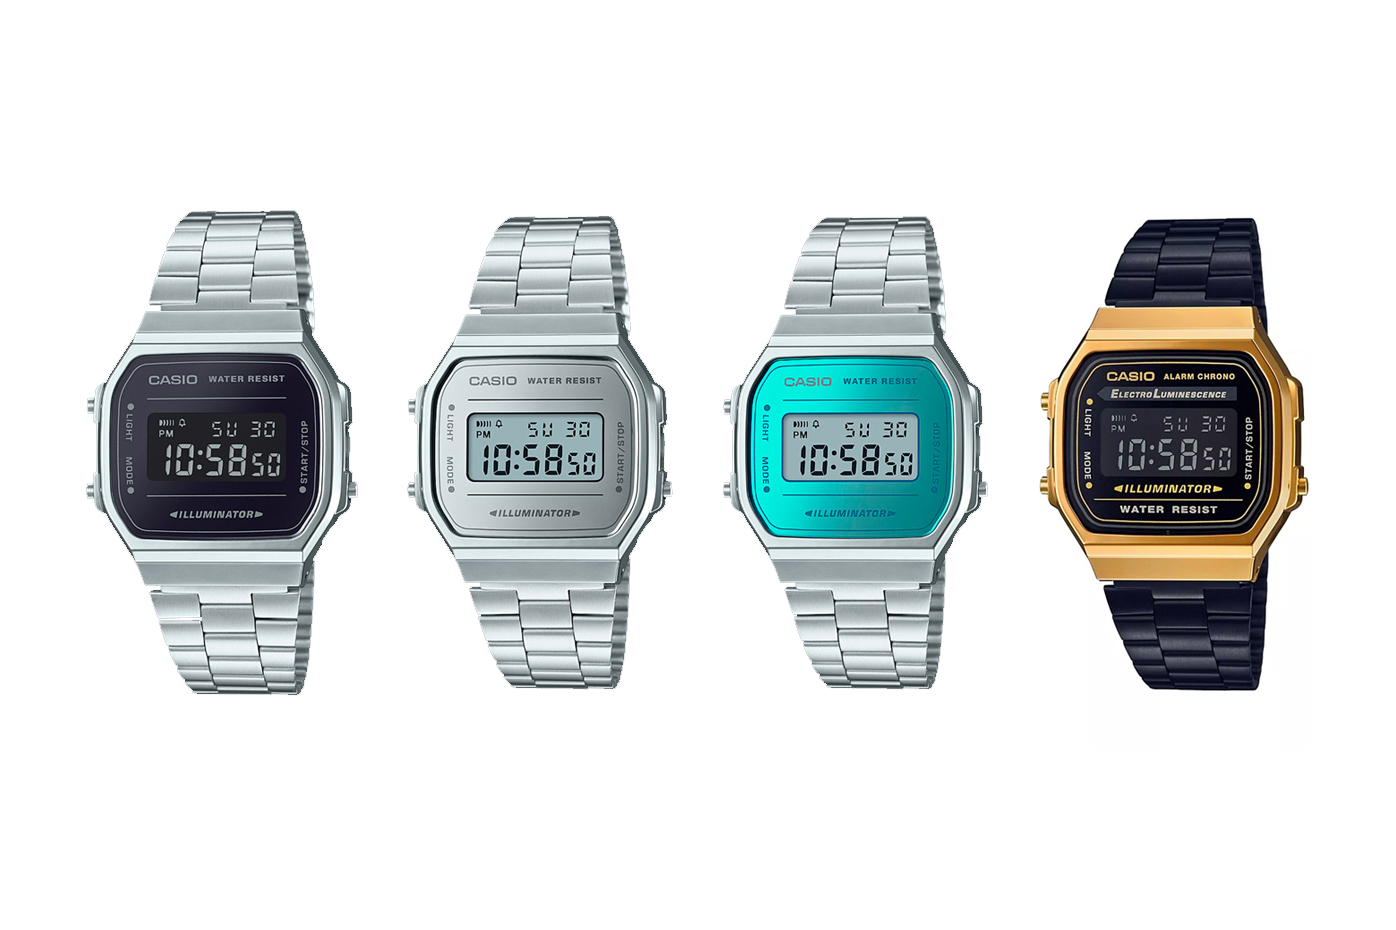 Casio Vintage Collection 2018 New Watches metallic gold silver teal price purchase digital retro accessories